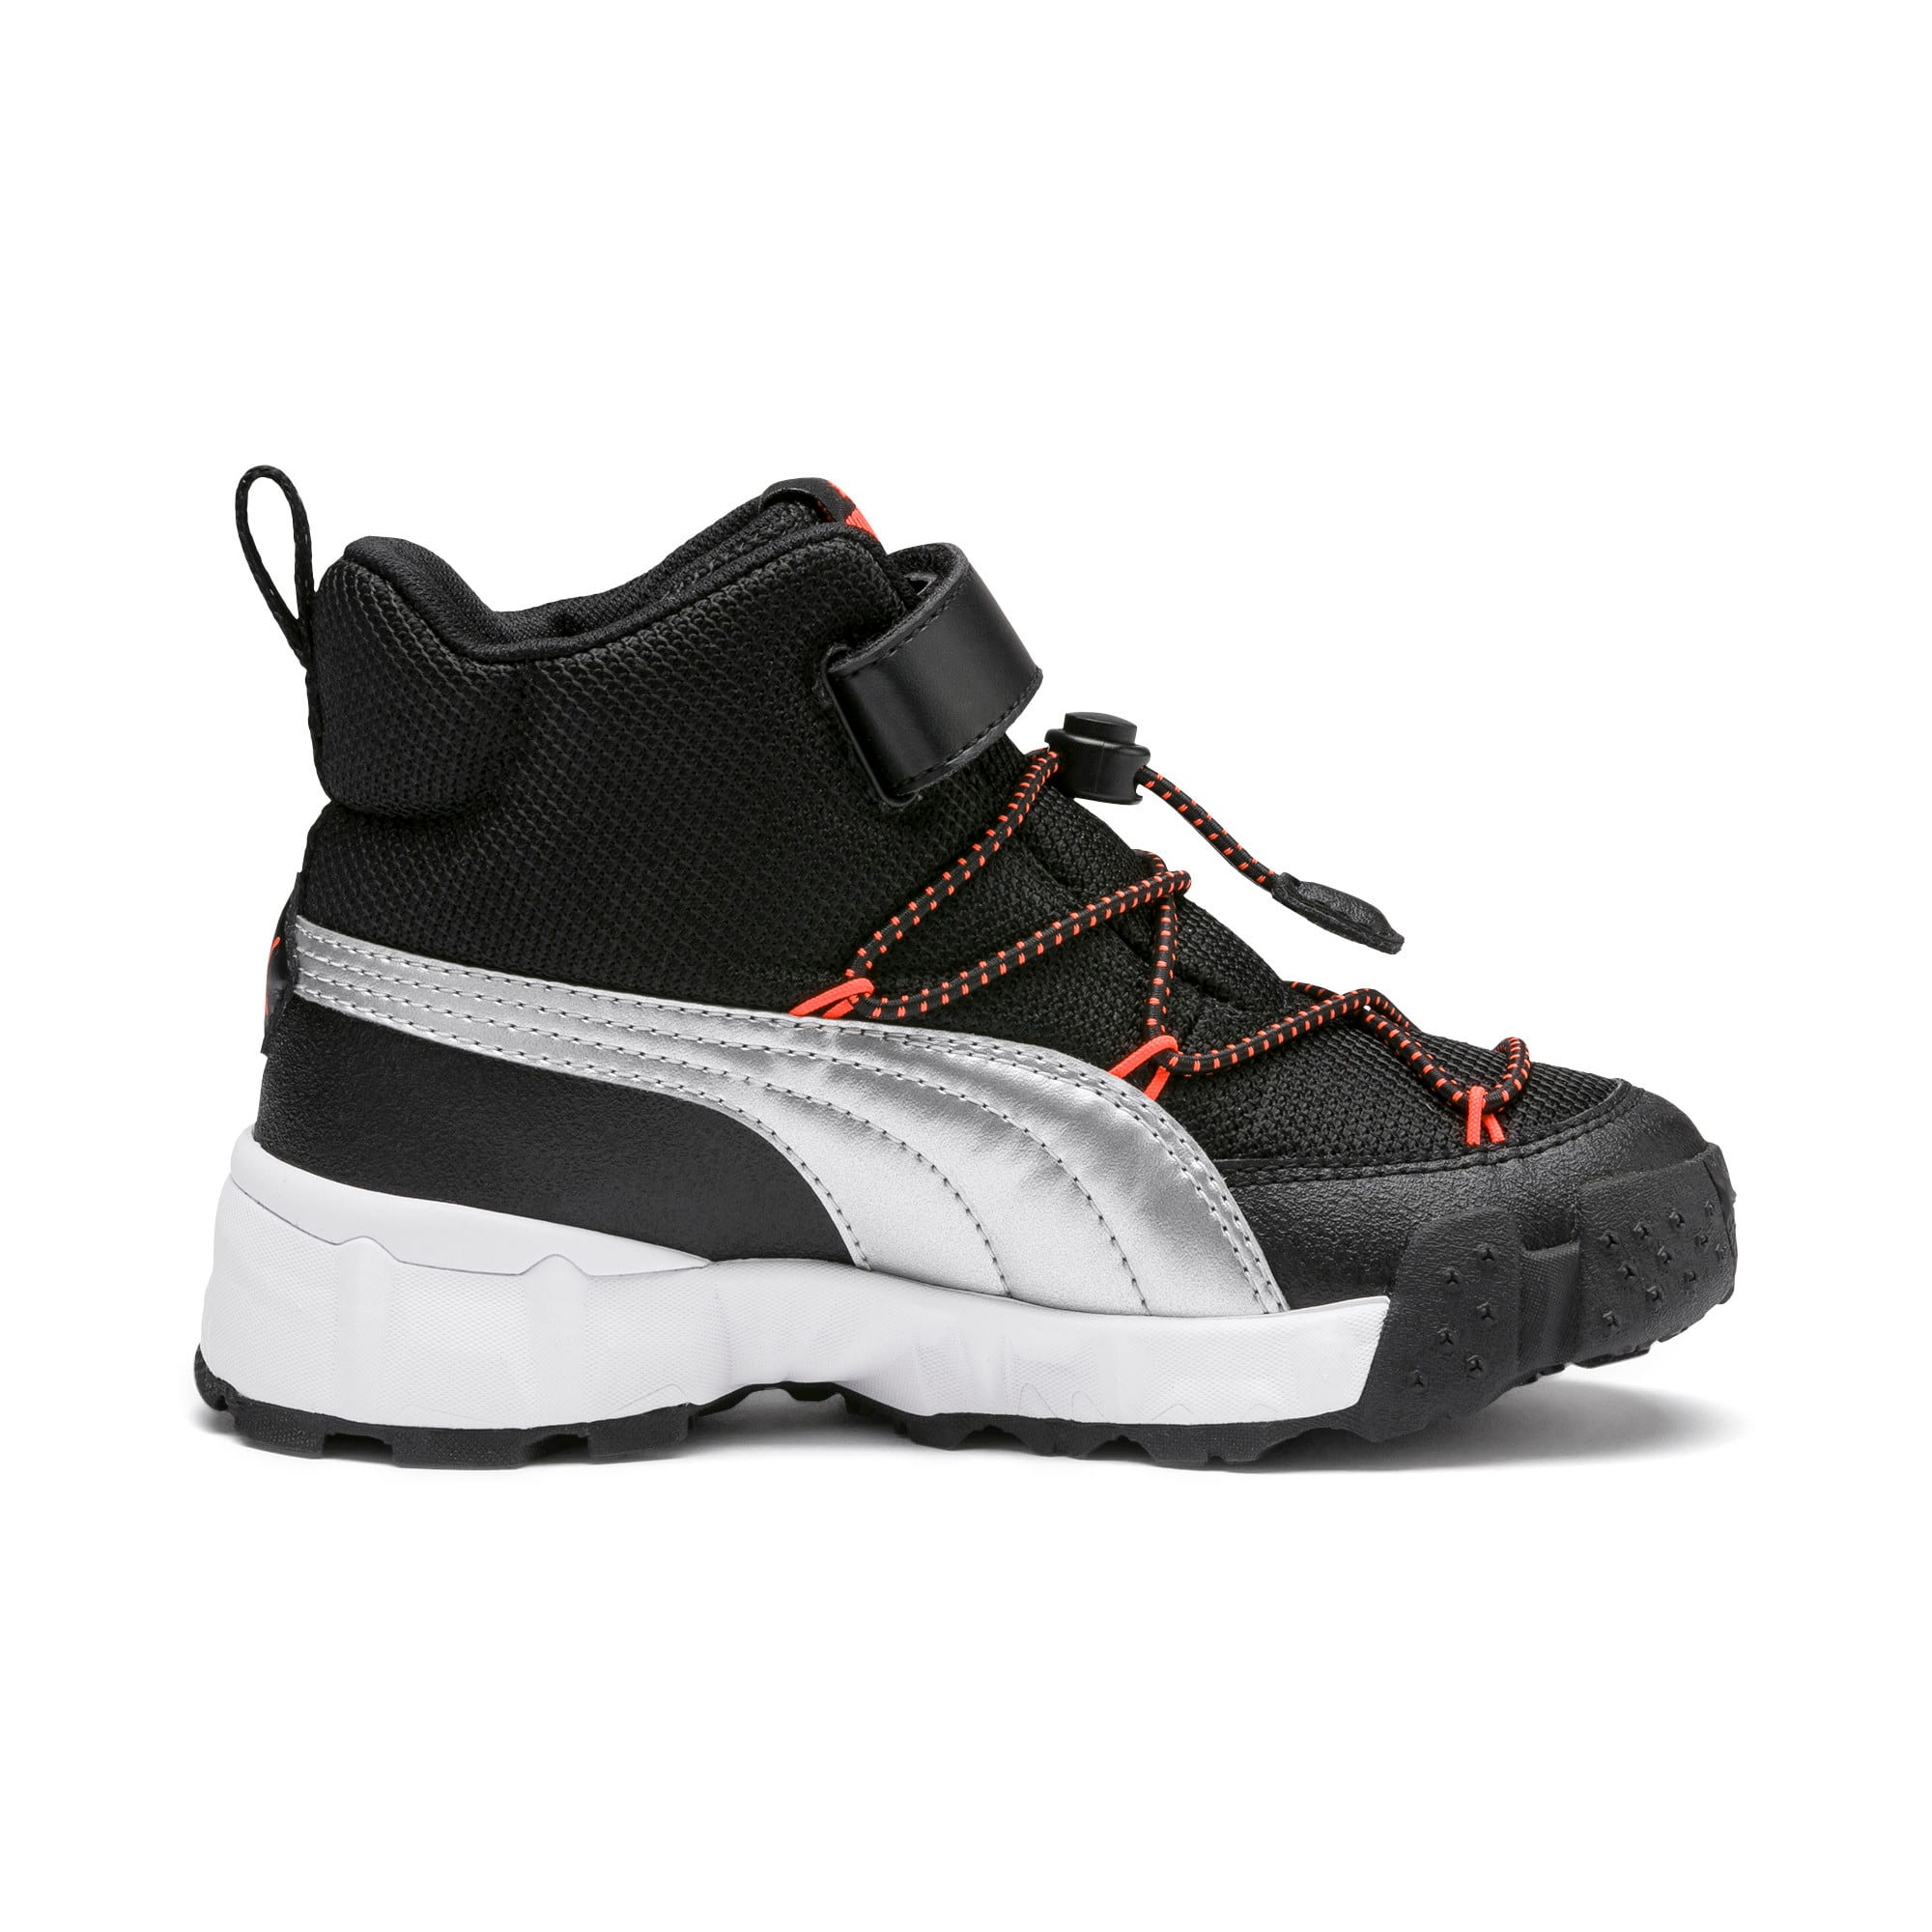 Thumbnail 5 of Maka V Kids Sneaker, Puma Black-Nrgy Red, medium